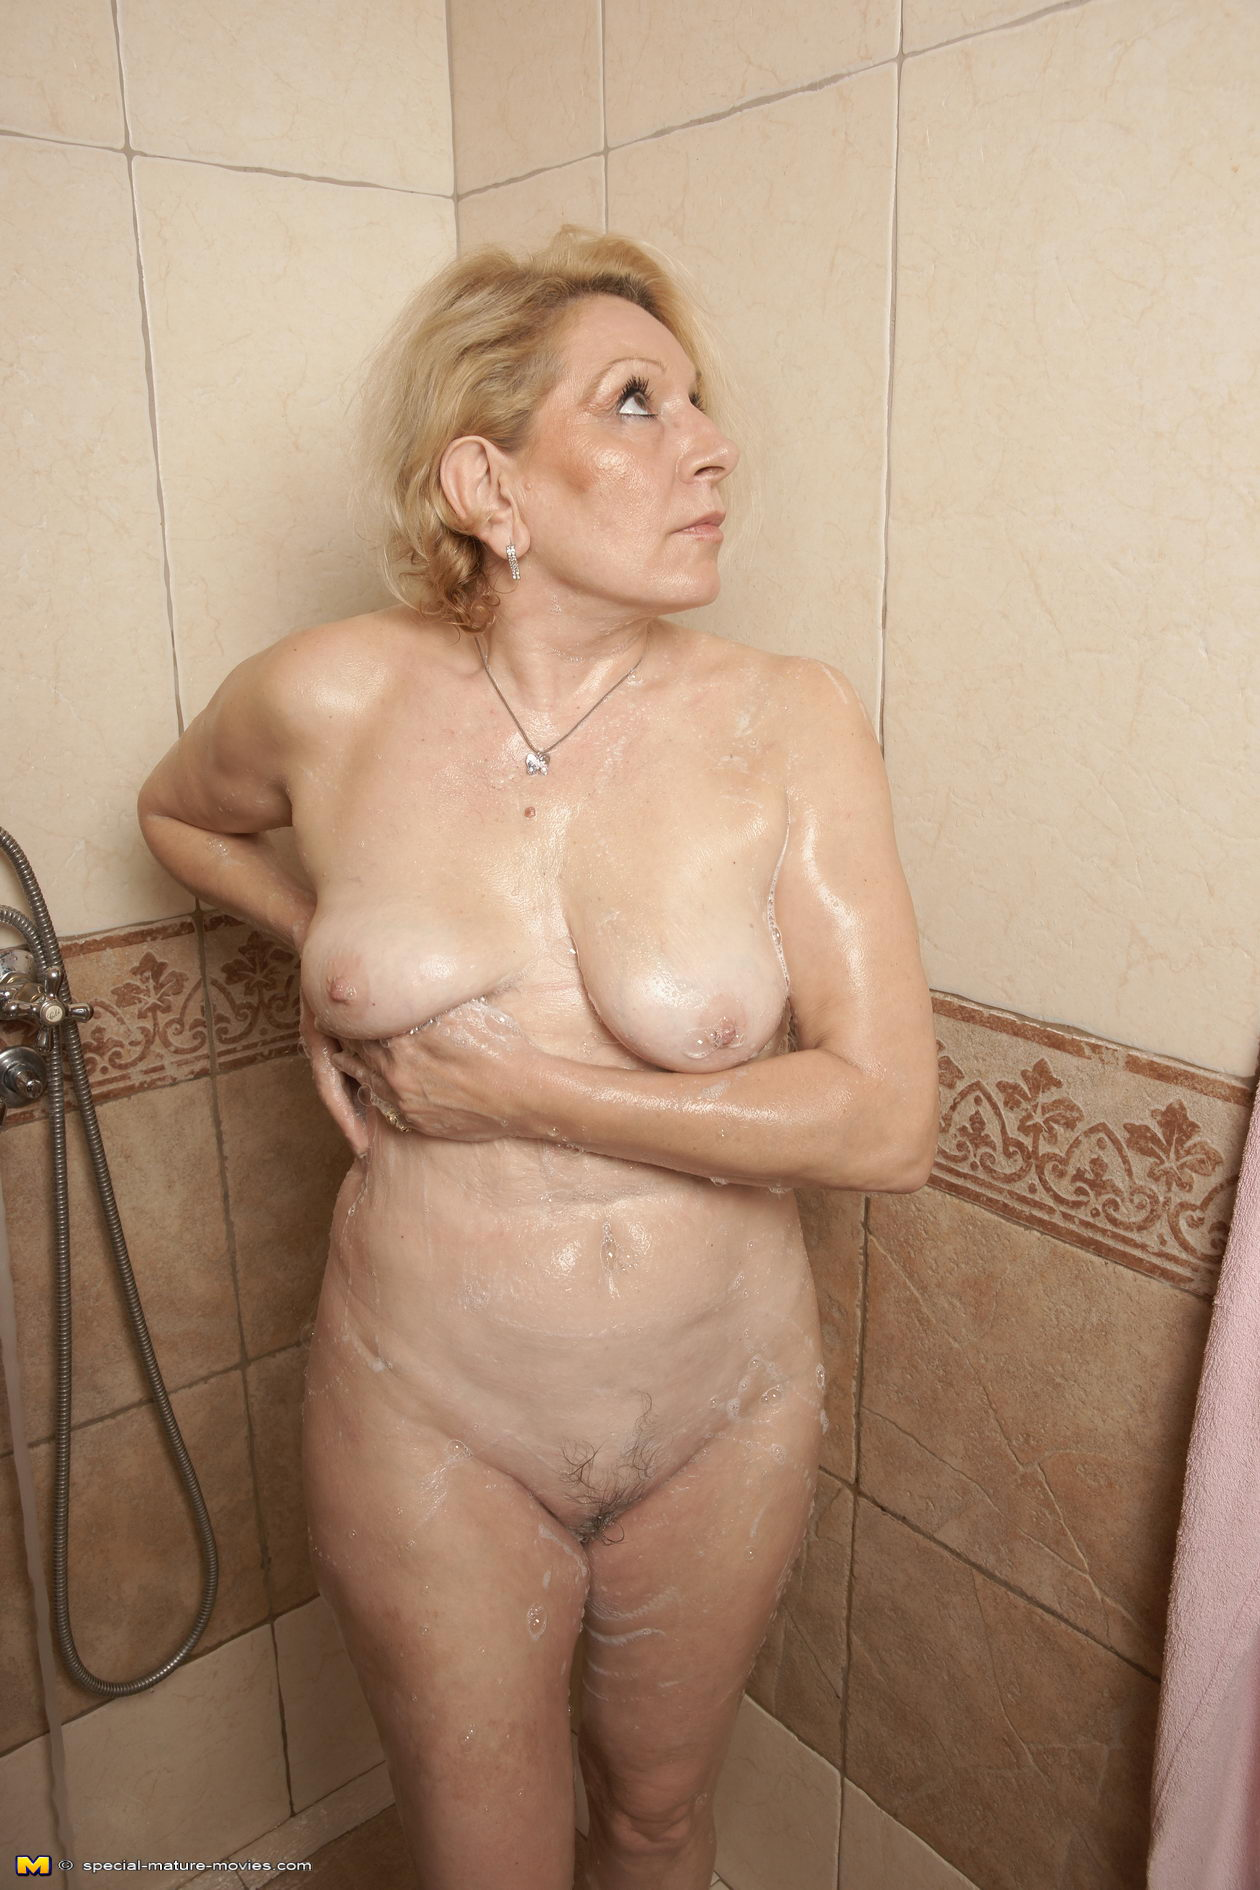 Yes!! bald pussy porn star fuck plz